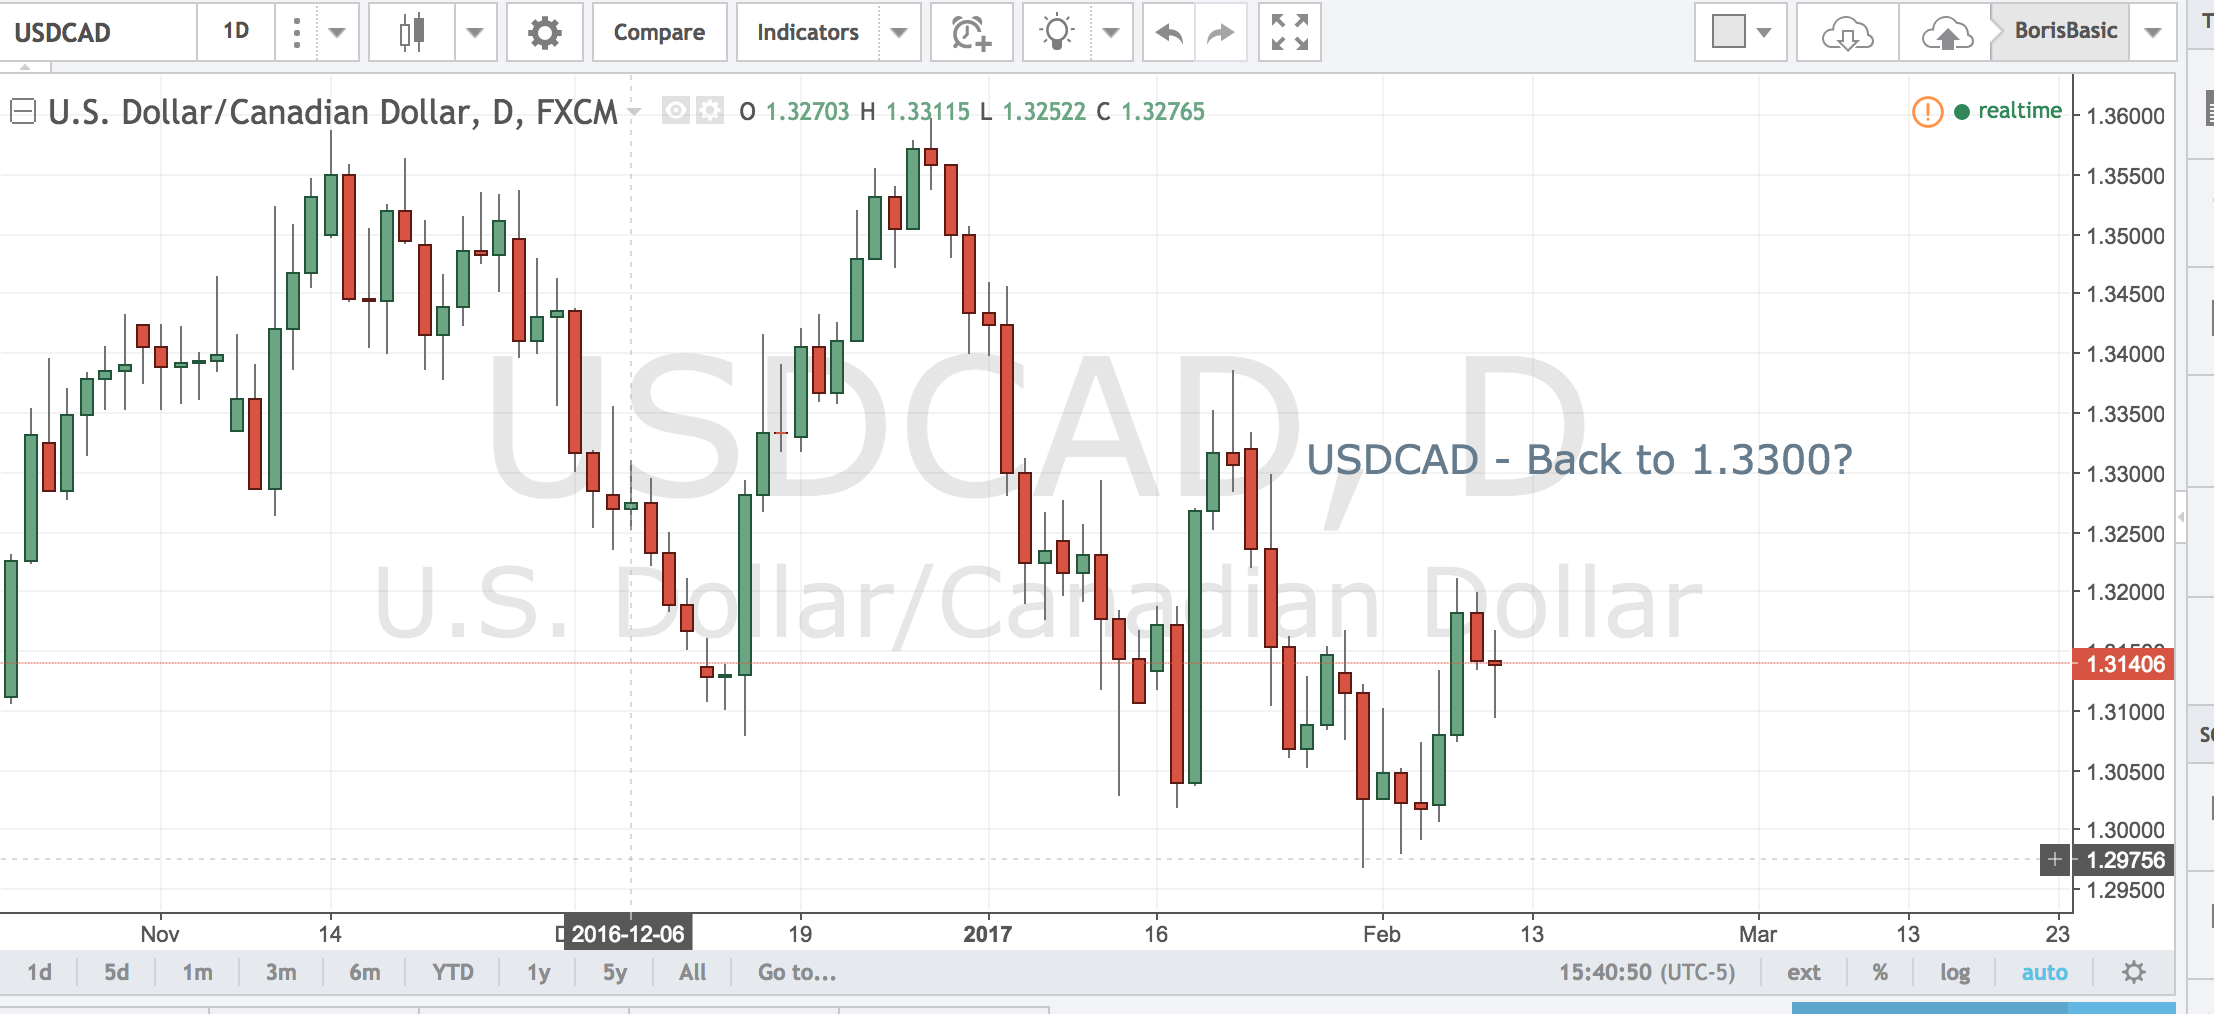 USDCAD – Back to 1.3300?